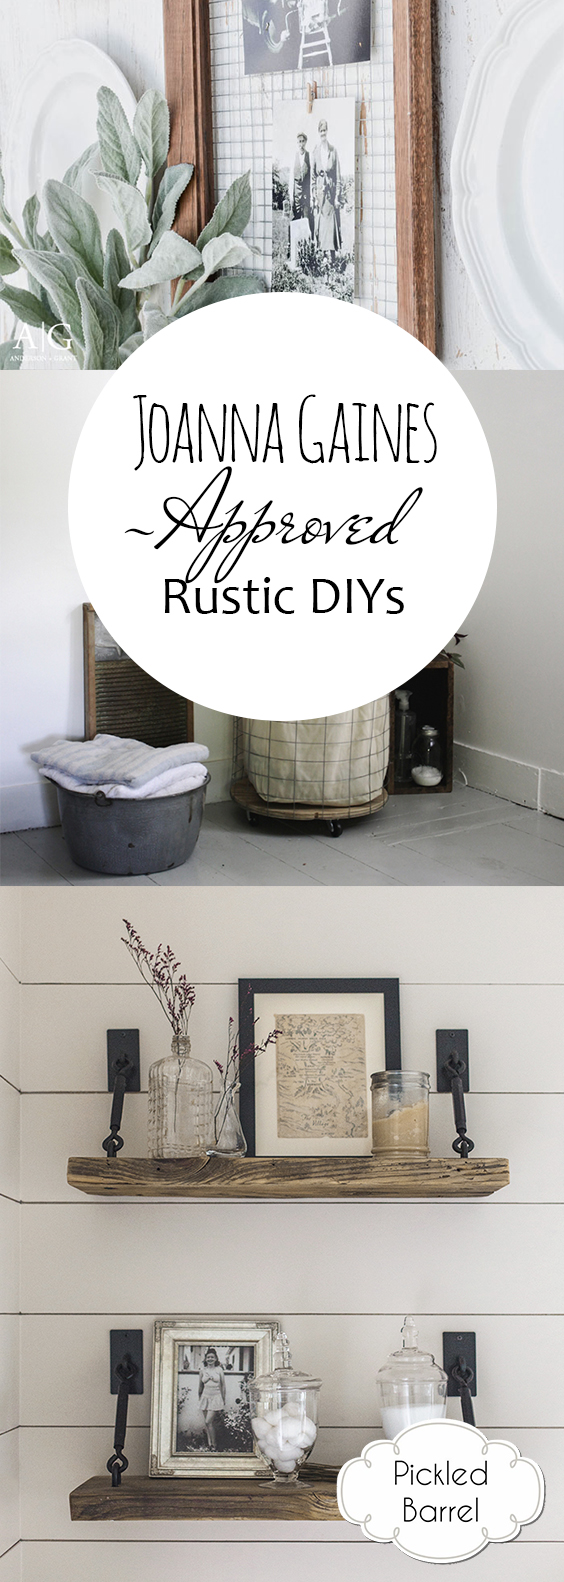 Joanna Gaines-Approved Rustic DIYs| Joanna Gaines, Joanna Gaines Crafts, Rustic Home Decor, DIY Rustic Home, Easy Rustic Home Decor, Farmhouse Home, DIY Farmhouse, DIY Farmhouse Decor. #JoannaGaines #JoannaGainesDIY #HomeDecor #RusticHomeDecor